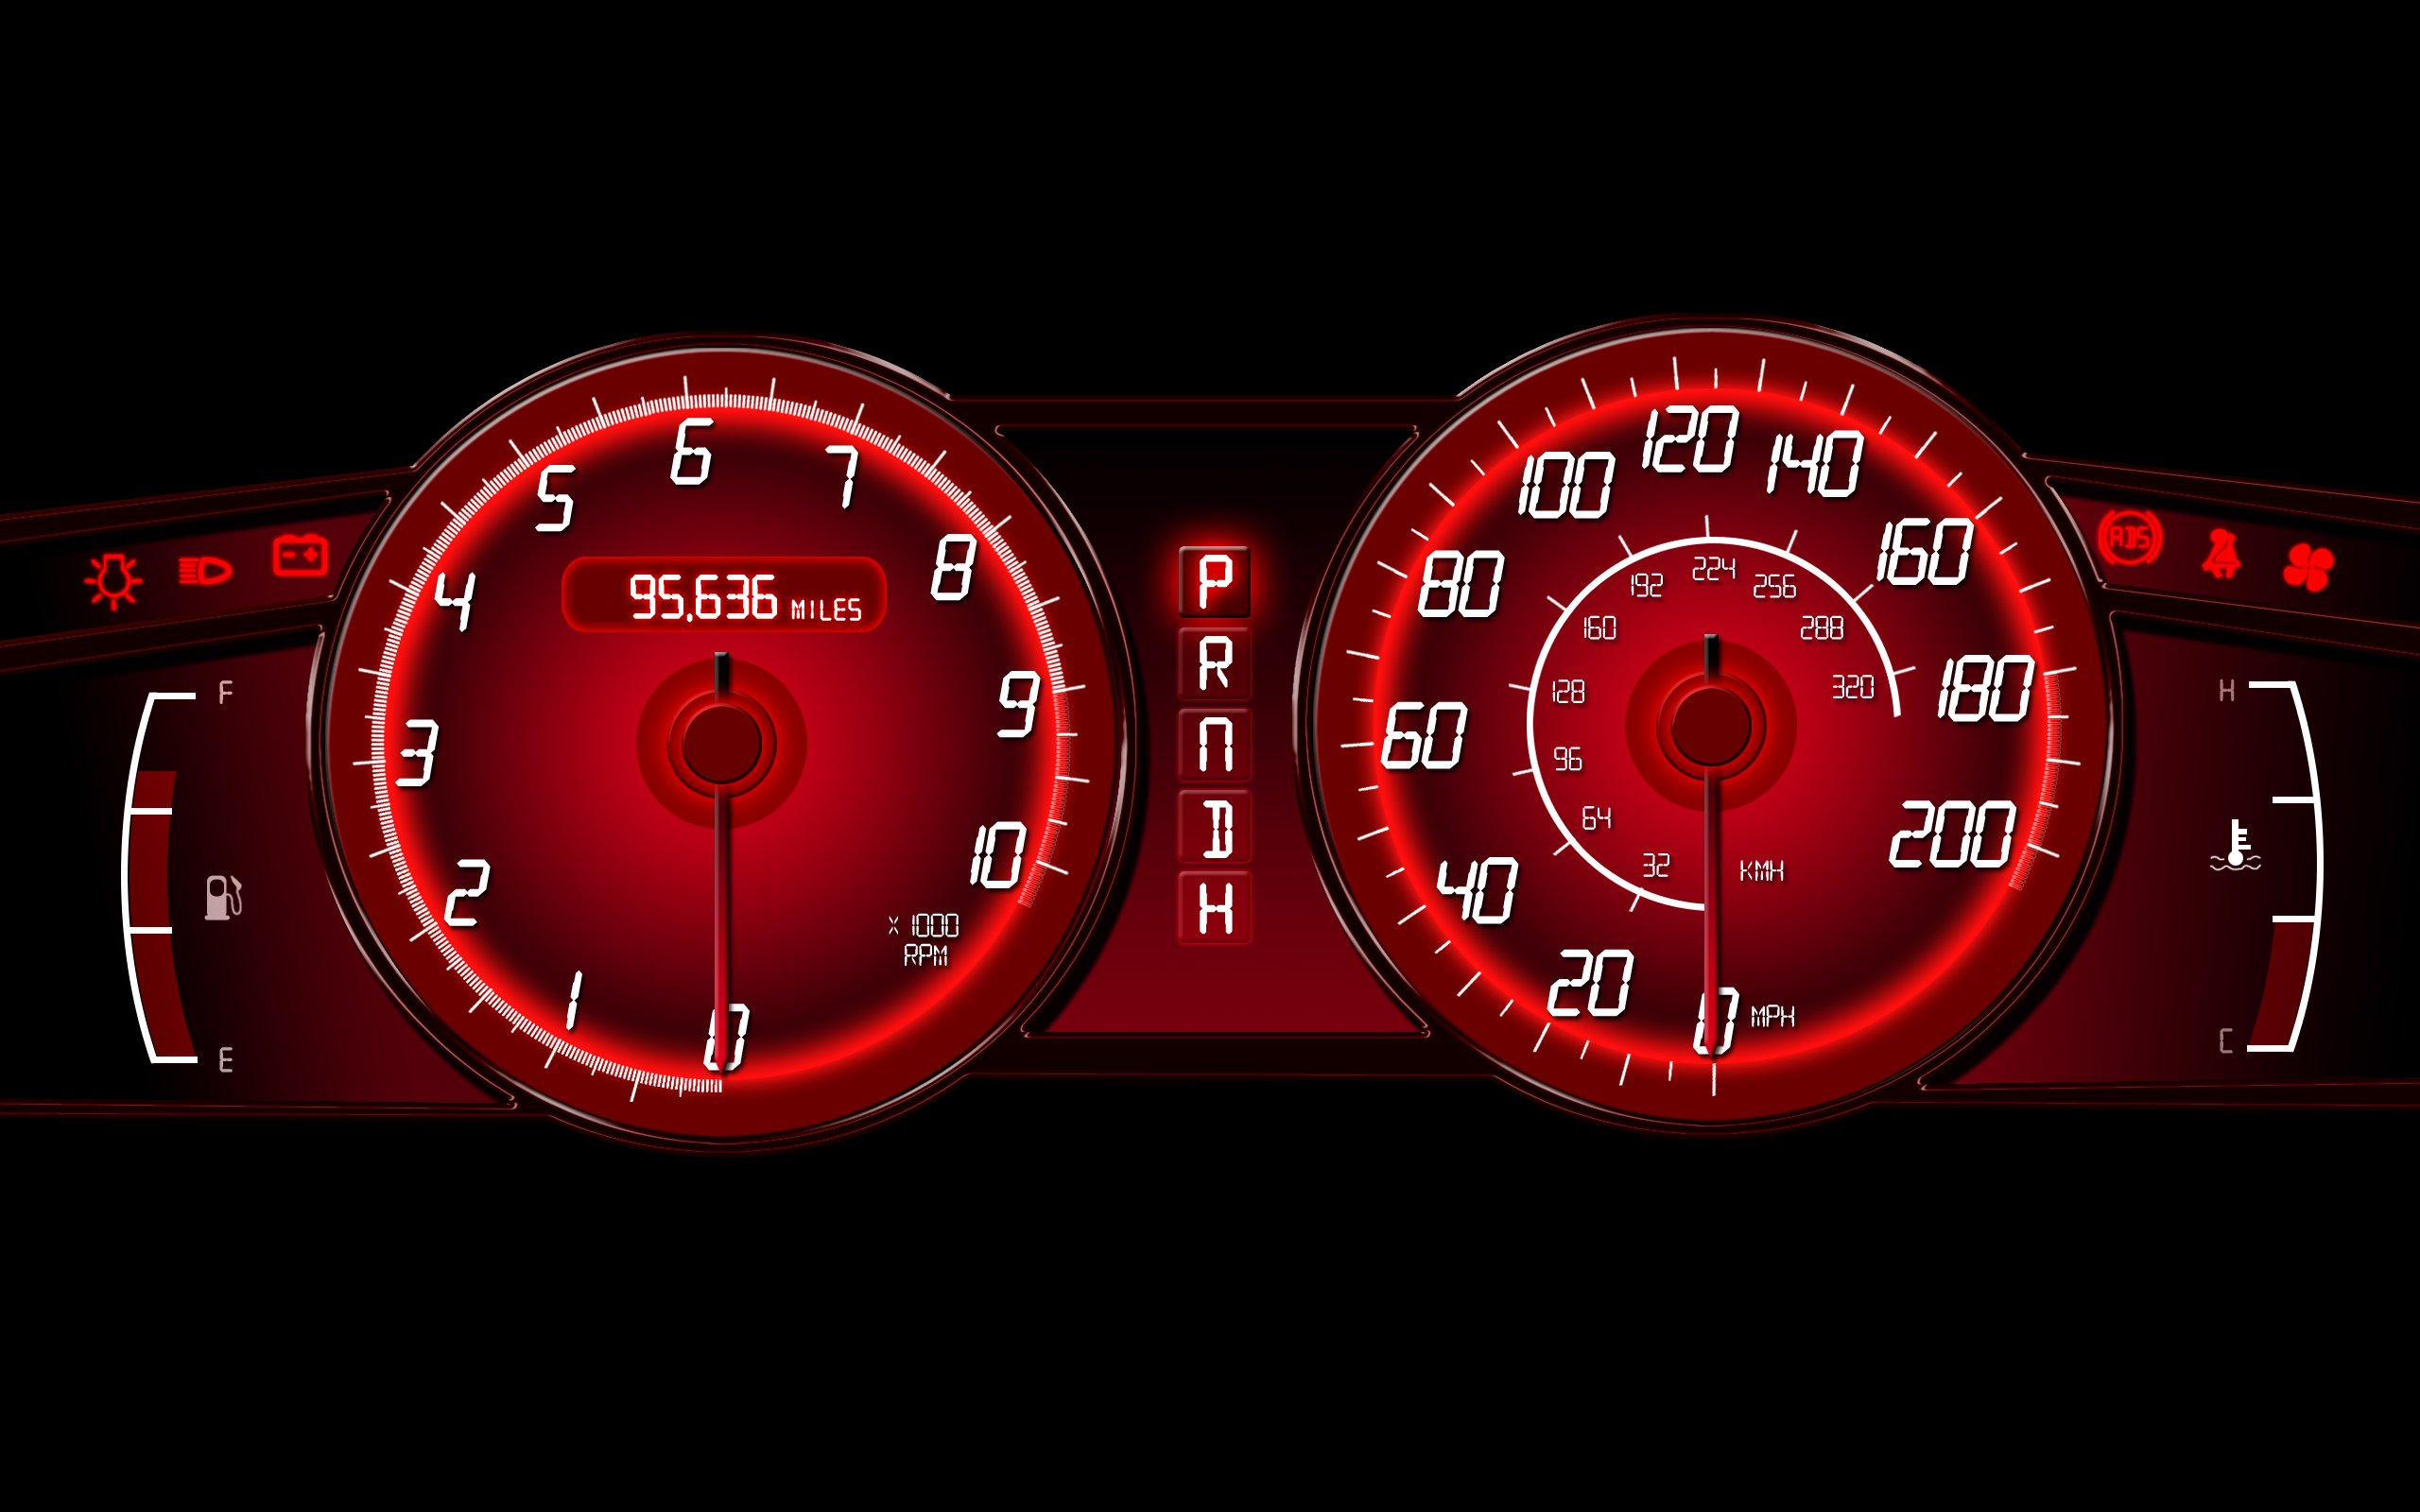 Car Speed Meter Live Wallpaper Speedometer In Paint Isolated